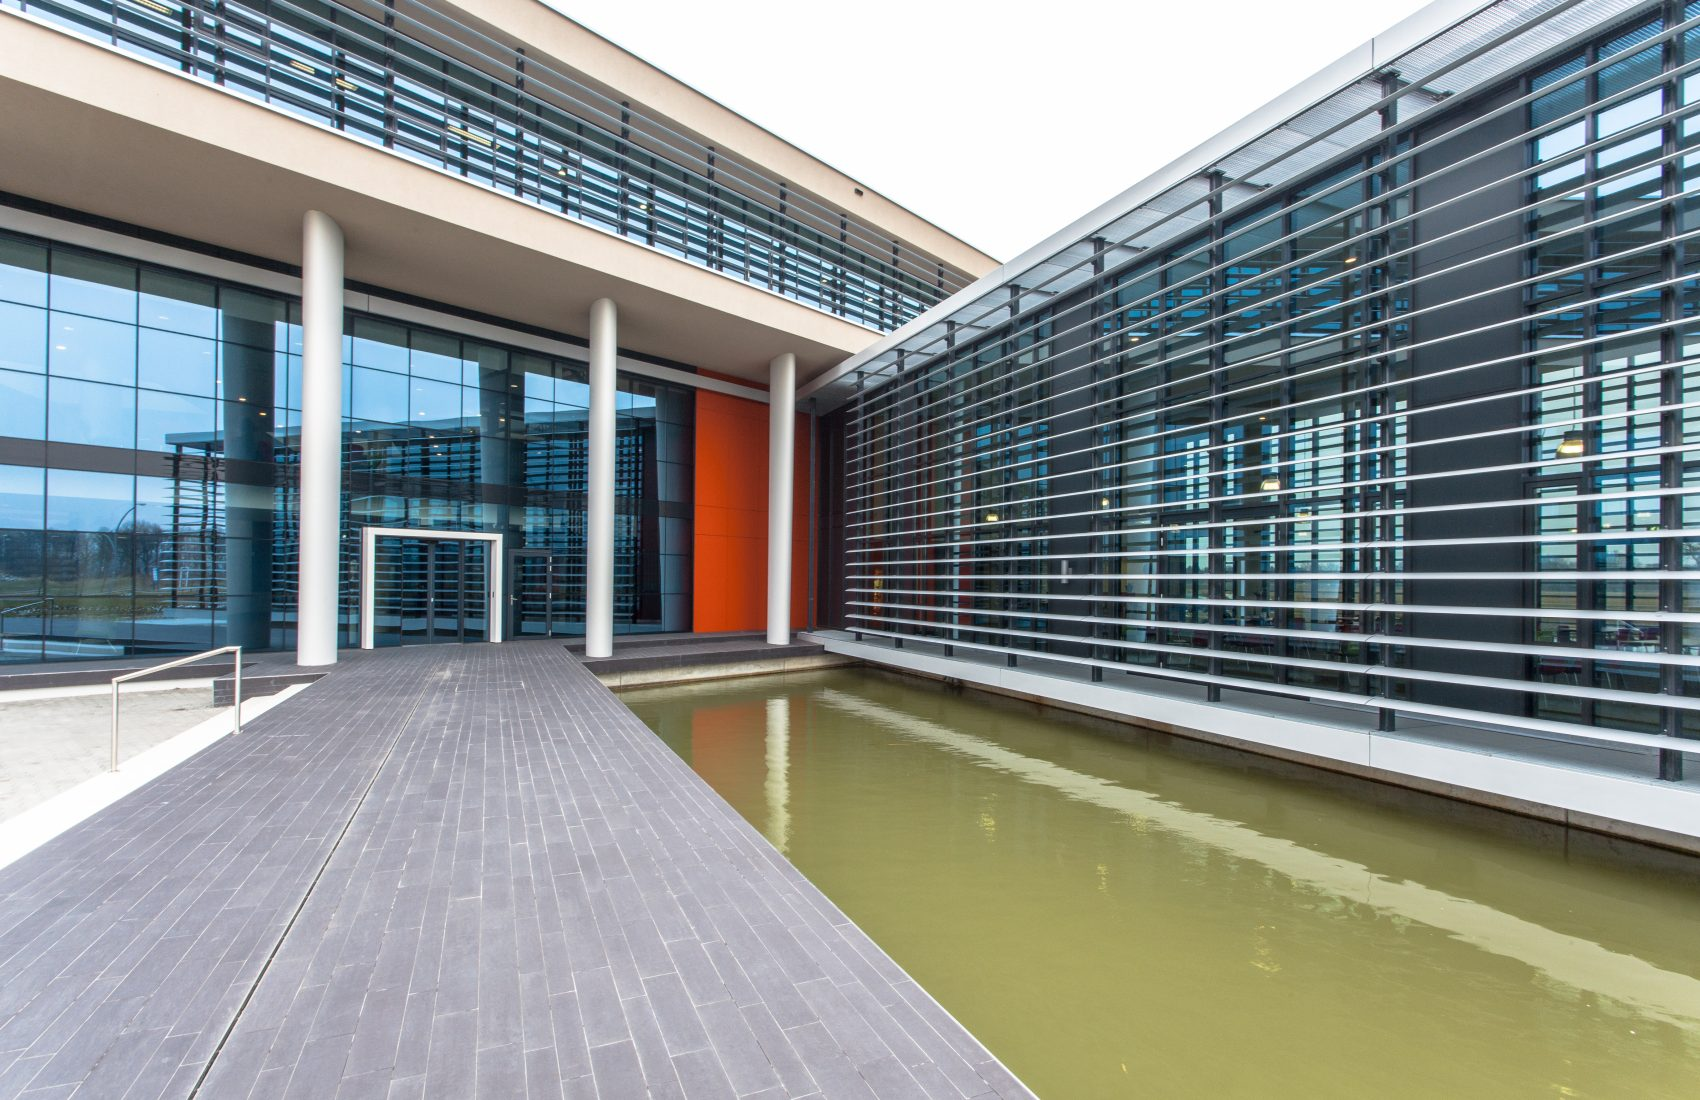 Modern commercial architecture in the Netherlands